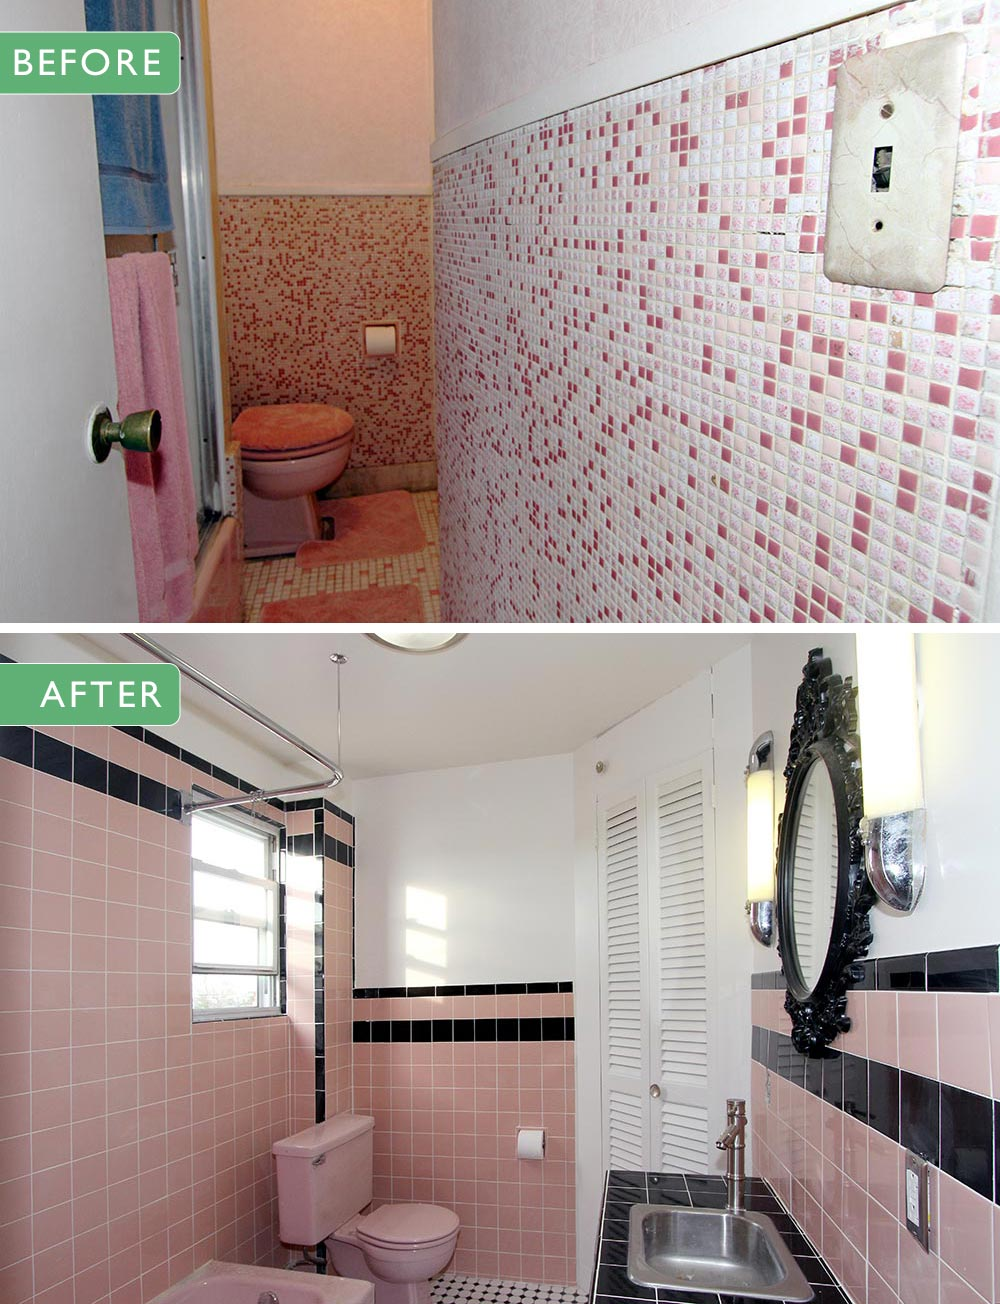 plain 1950s bathroom remodel before and after remodeling ideas